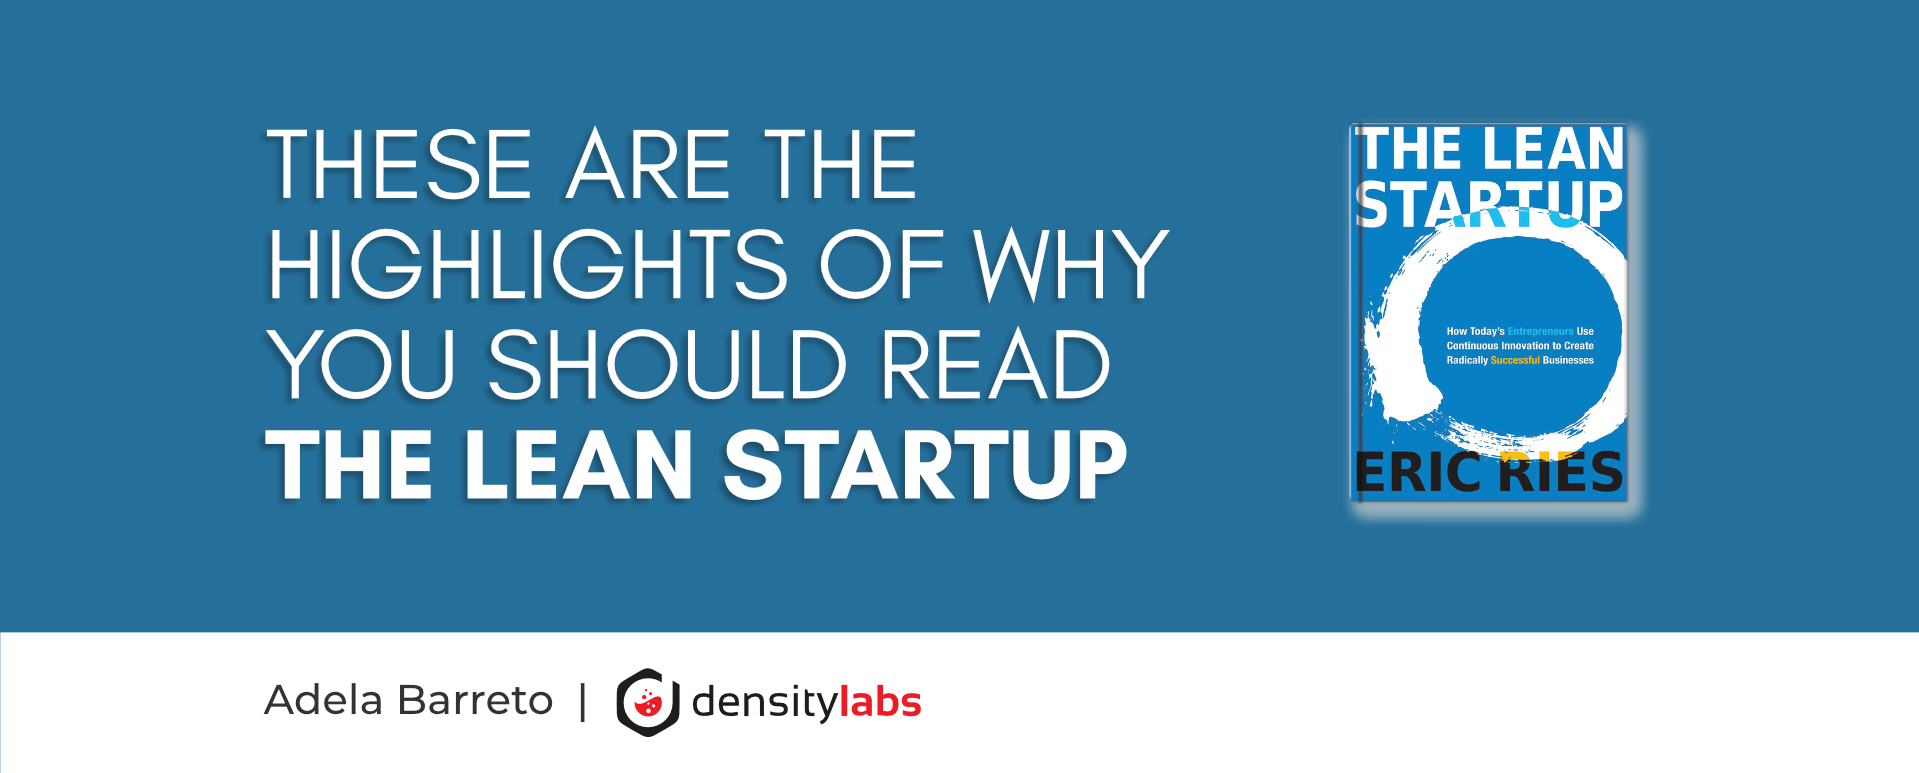 These are the highlights of why you should read The Lean Startup